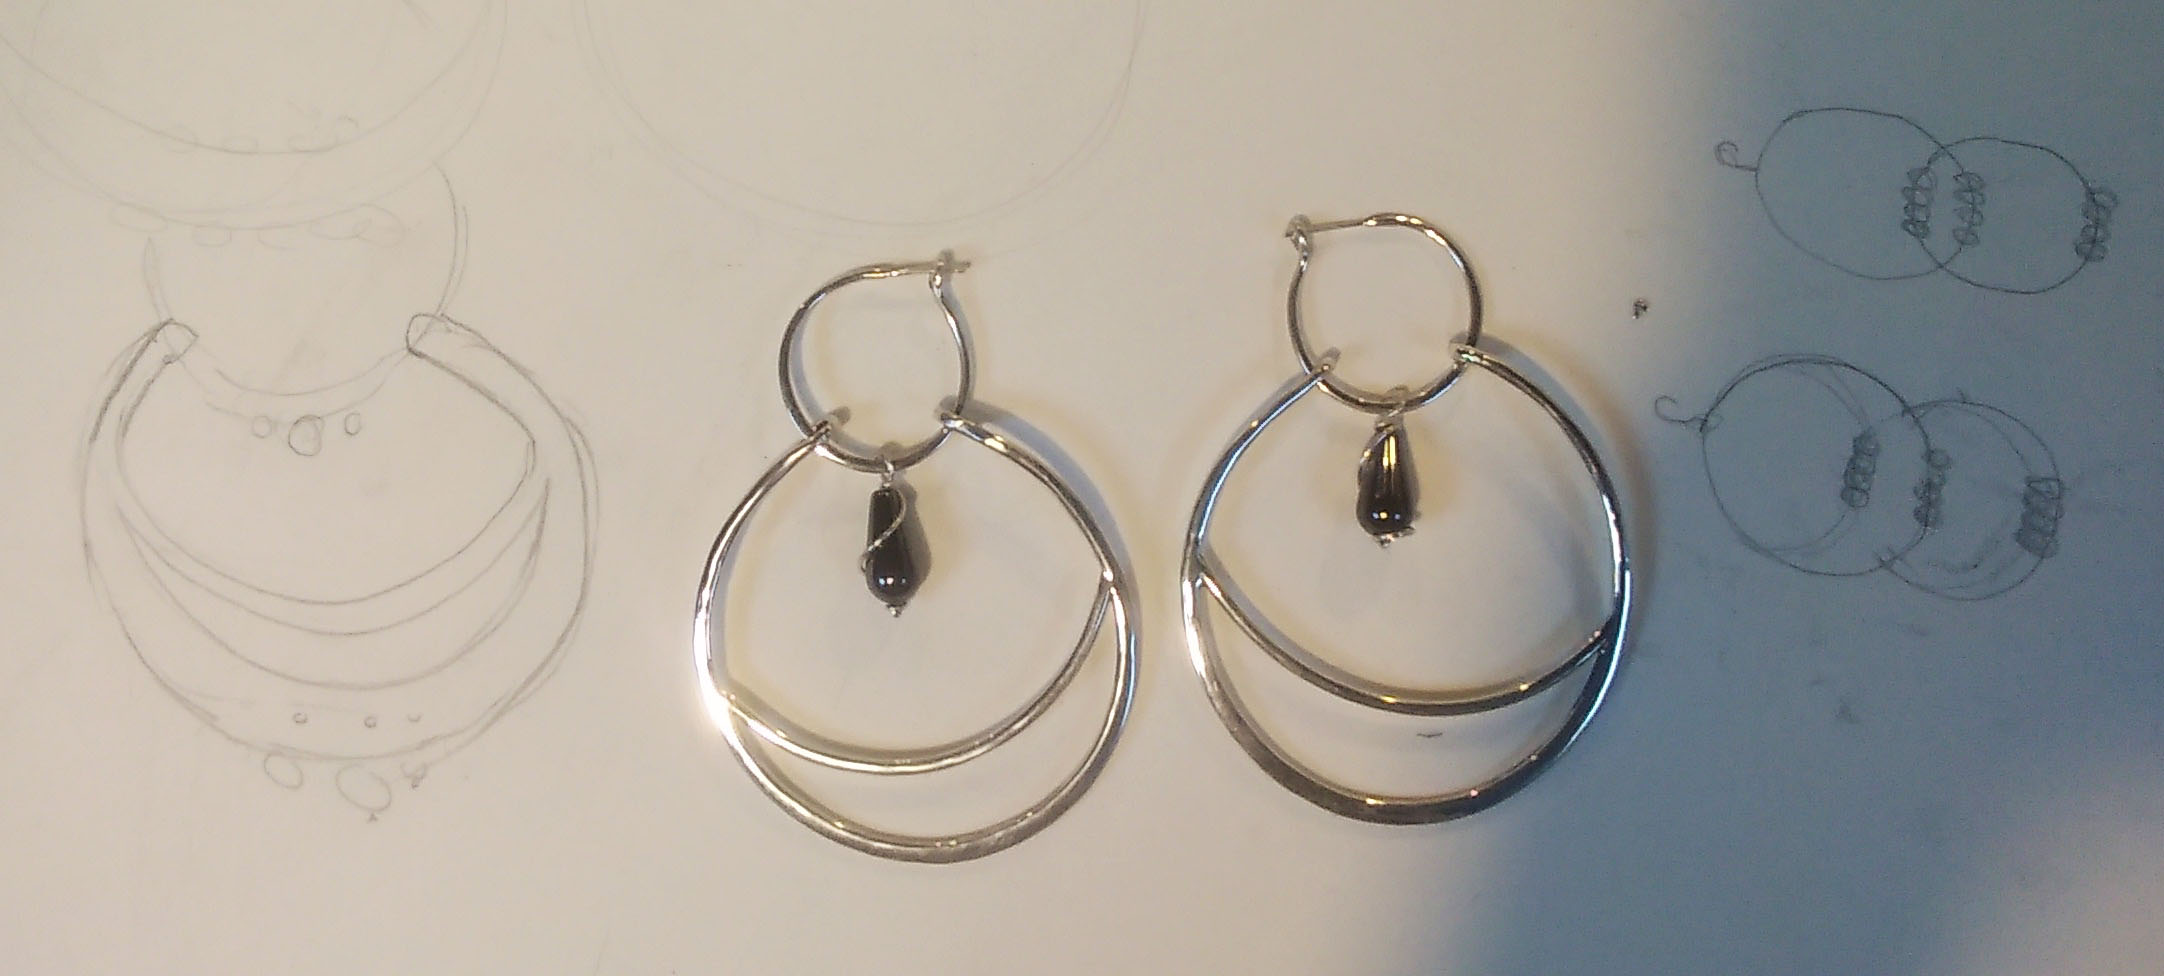 Silver hoops made by first time silver smithing student.